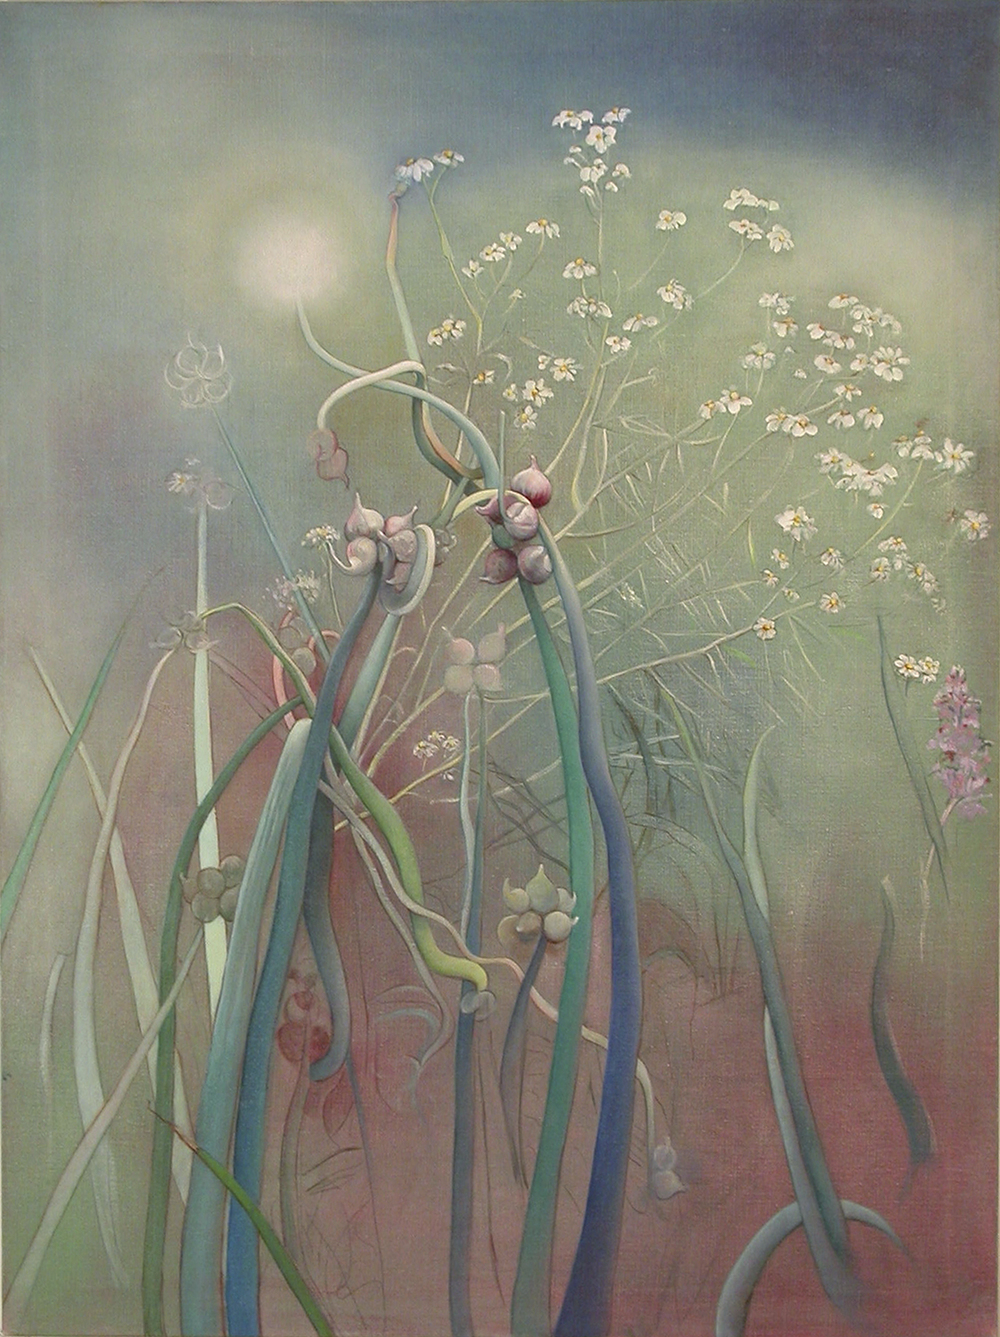 Untitled oil on linen 40x30, 2005